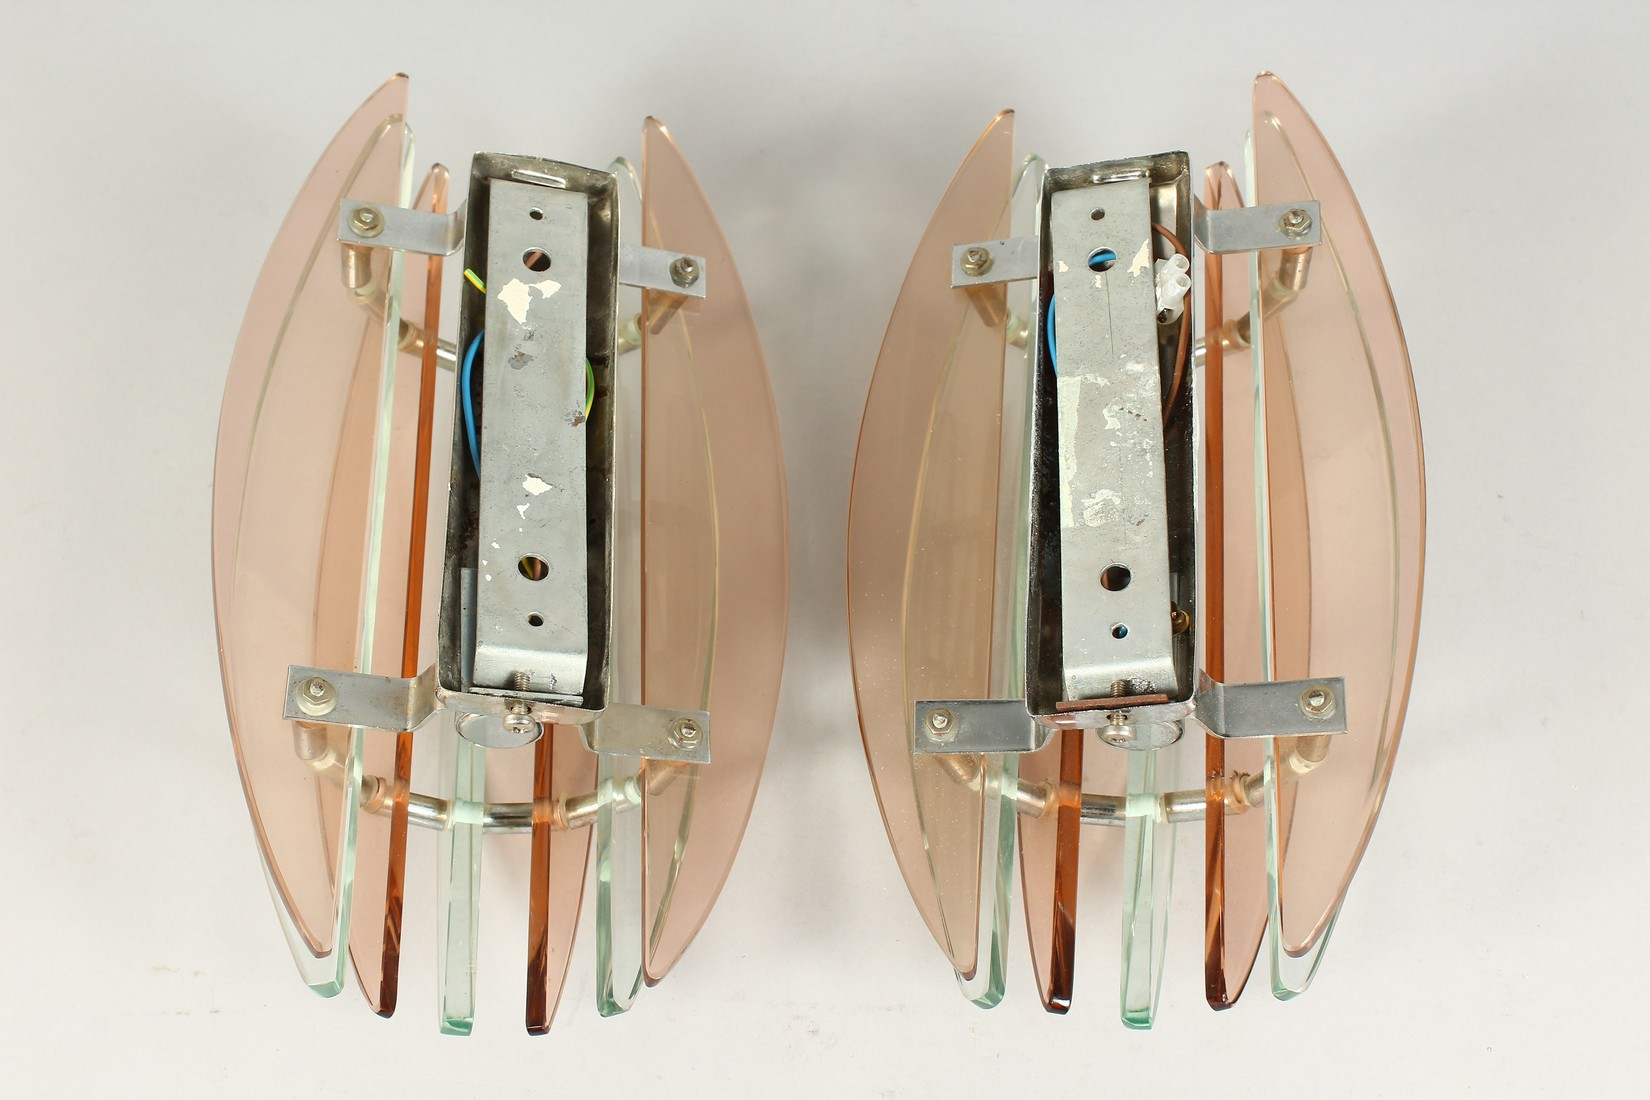 A PAIR OF ART DECO WALL LIGHTS 11.5ins long - Image 4 of 5